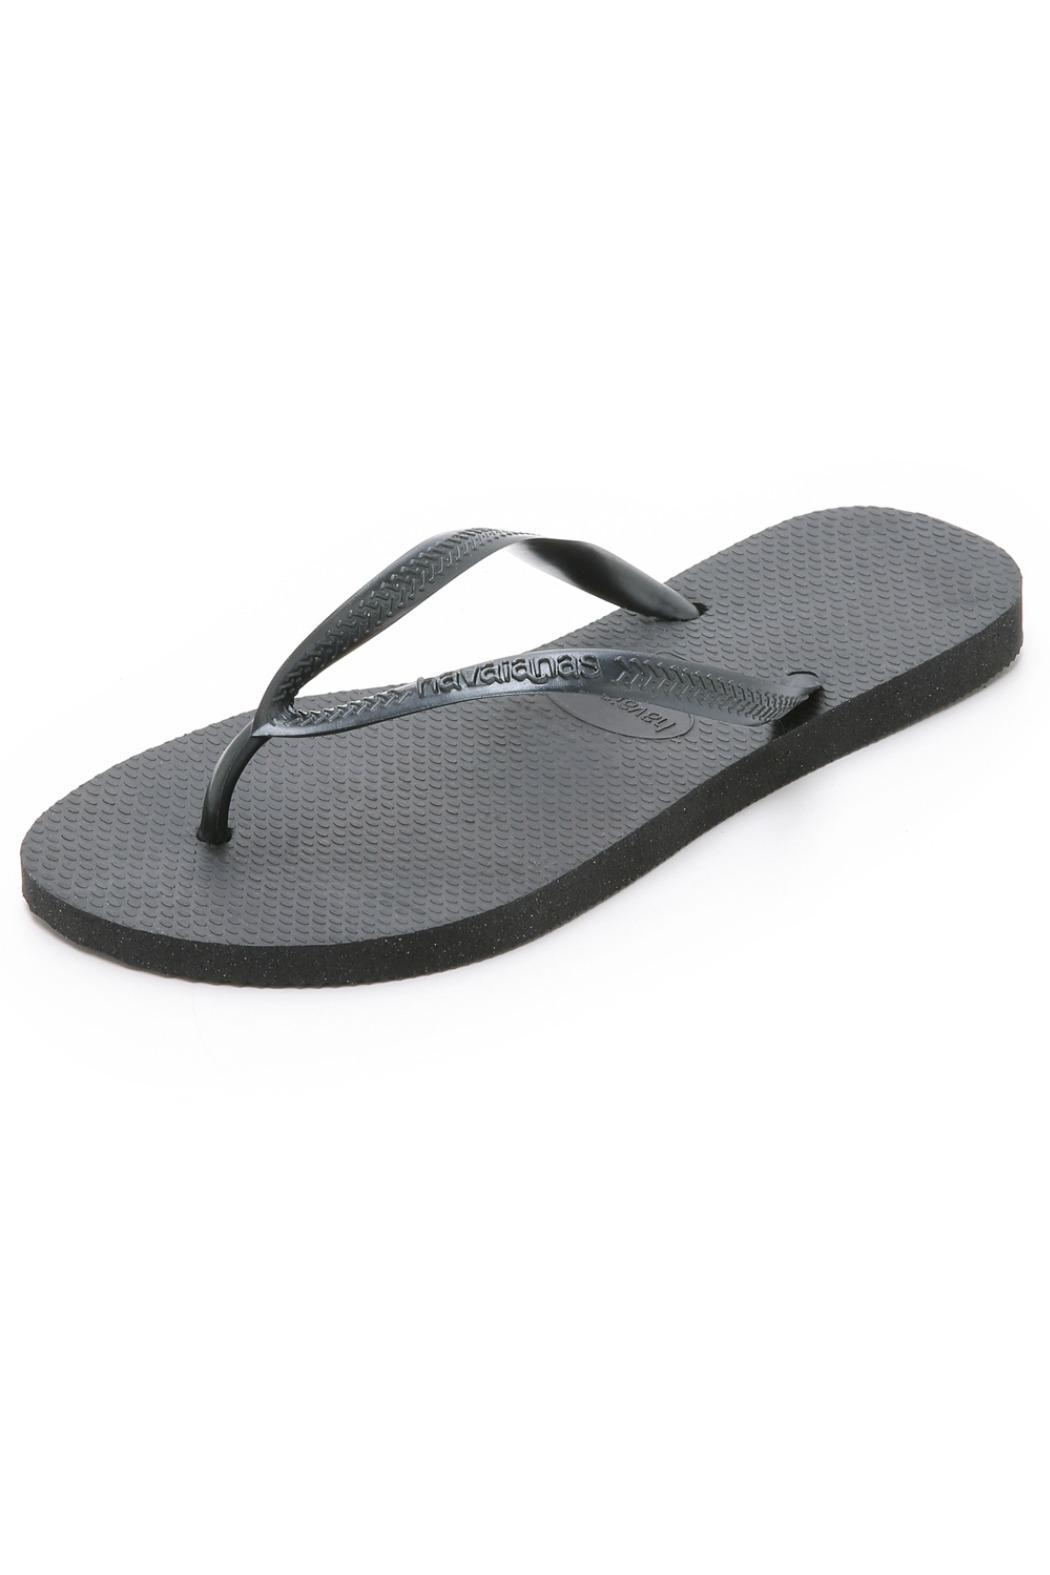 5629ed5fdace81 Havaianas Black Flip Flops from New York by Lola Saratoga — Shoptiques